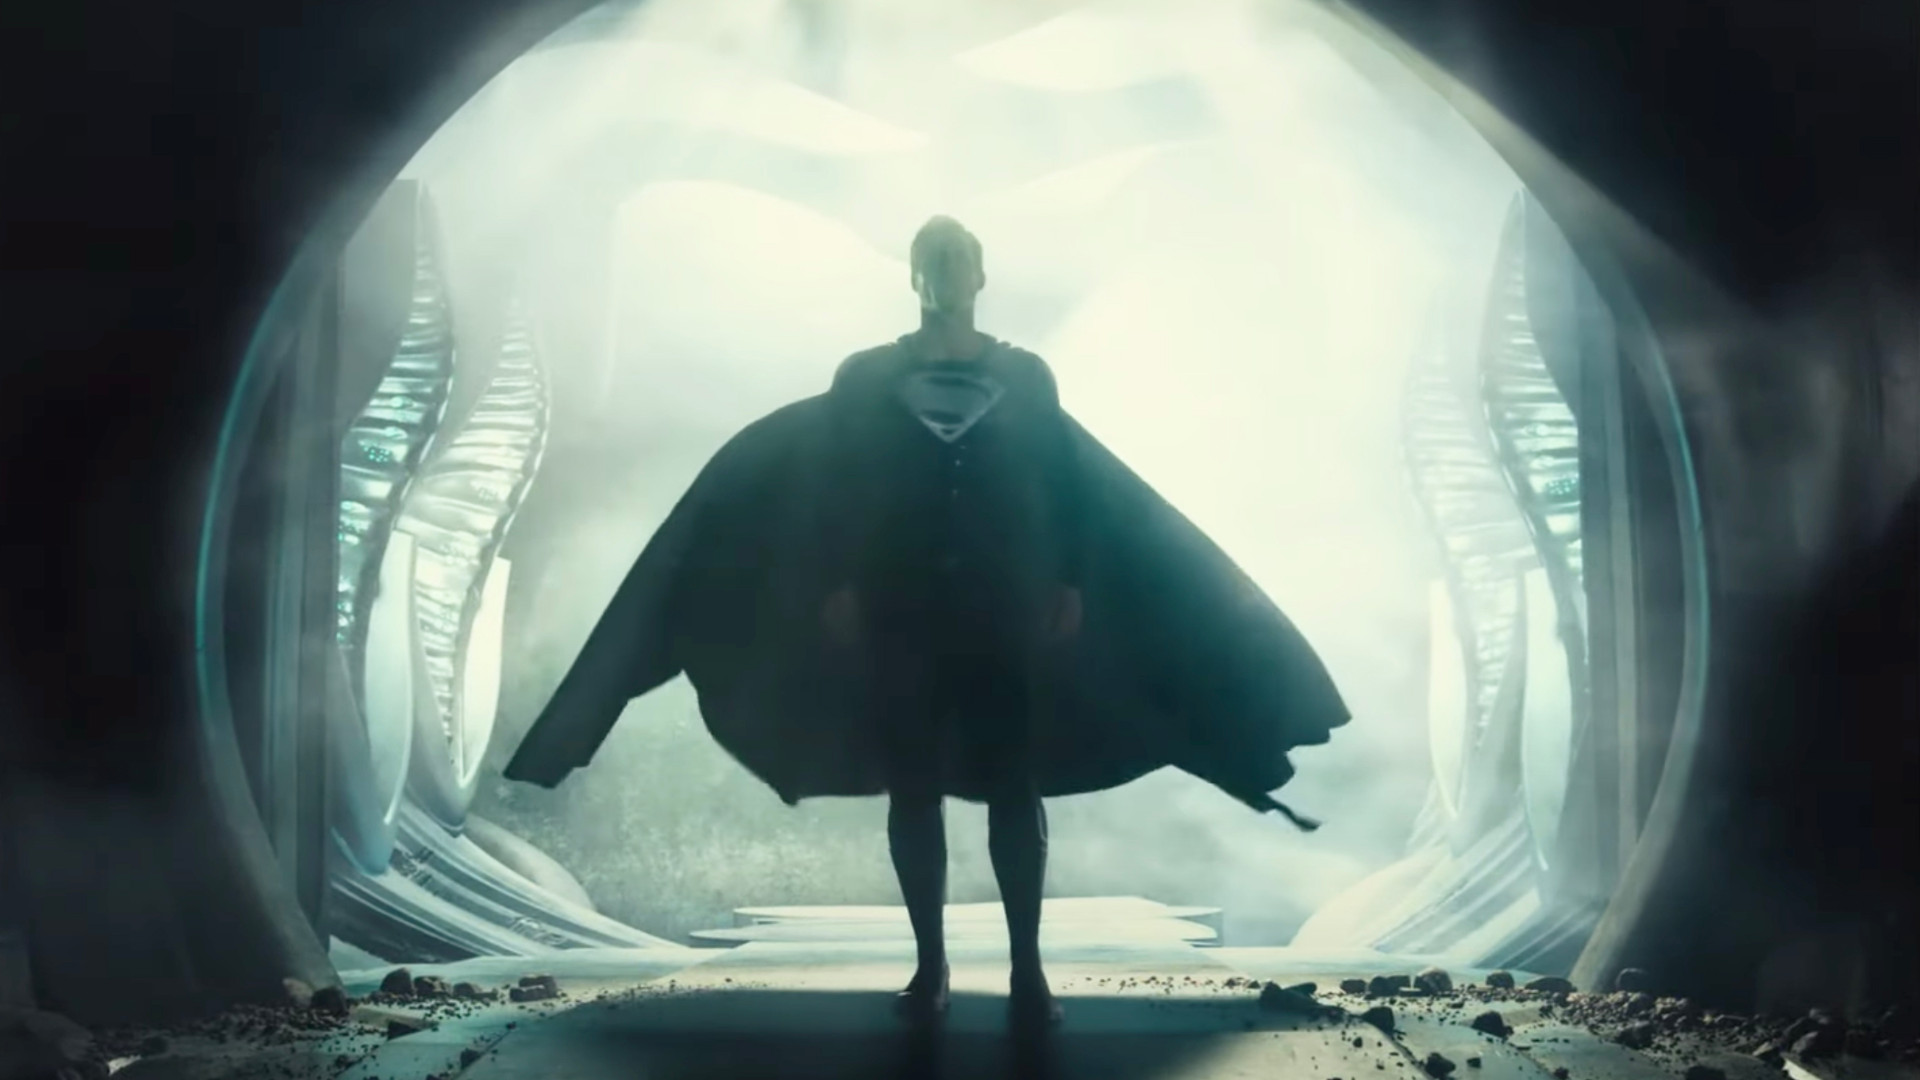 Zack Snyder's Justice League is finished, director confirms | GamesRadar+